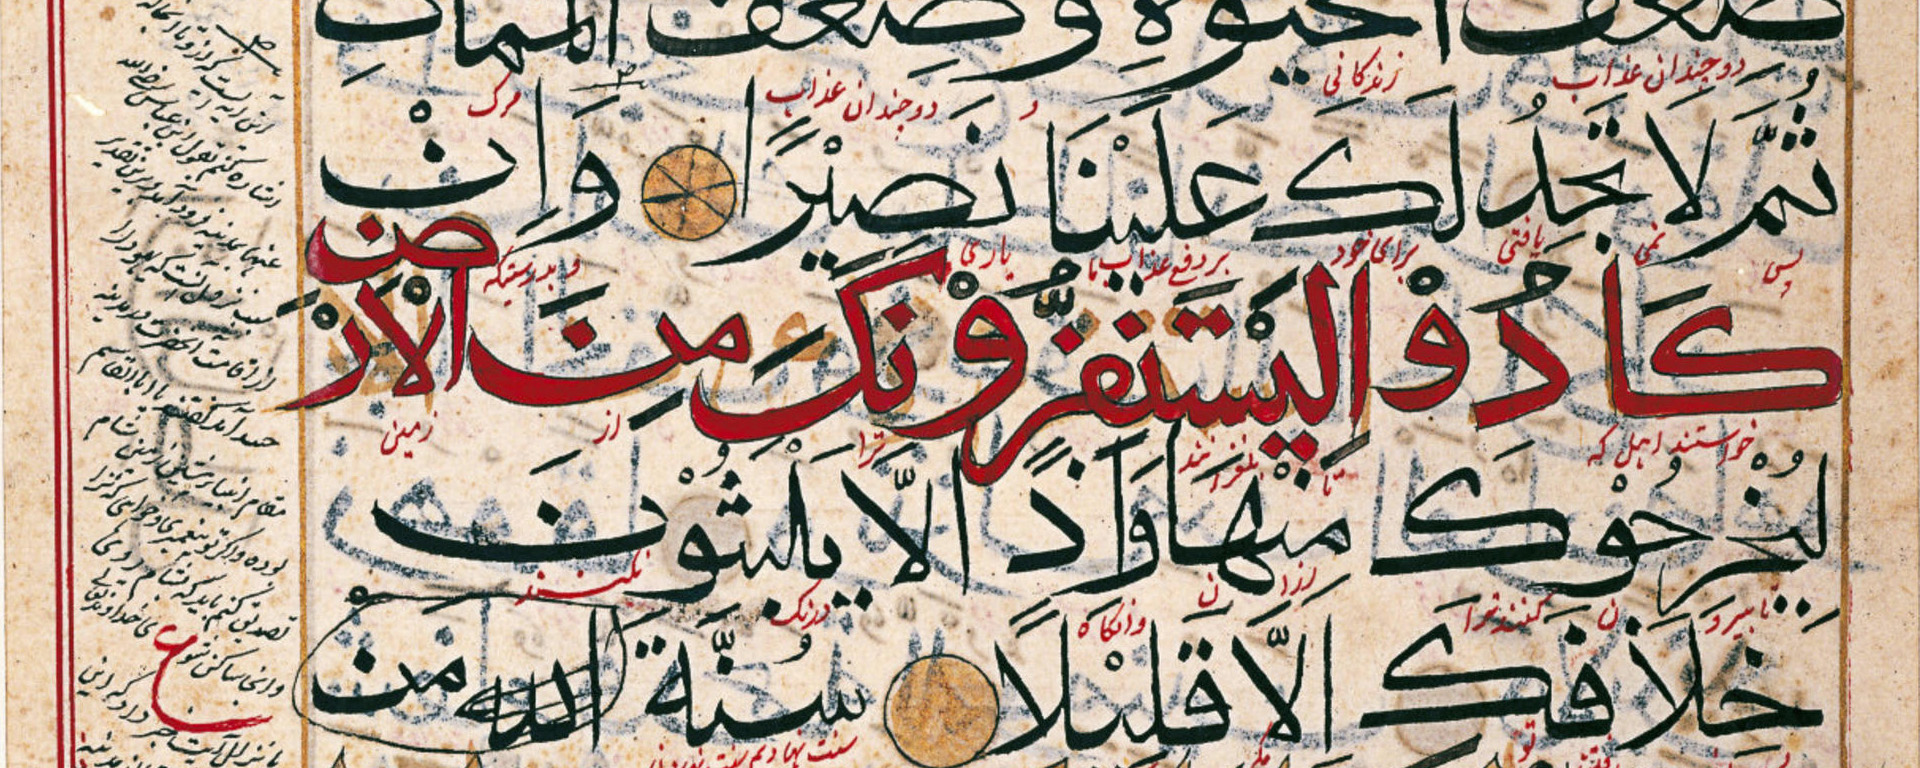 Image: https://www.agakhanmuseum.org/collection/artifact/quran-folio-0 (Permitted use)